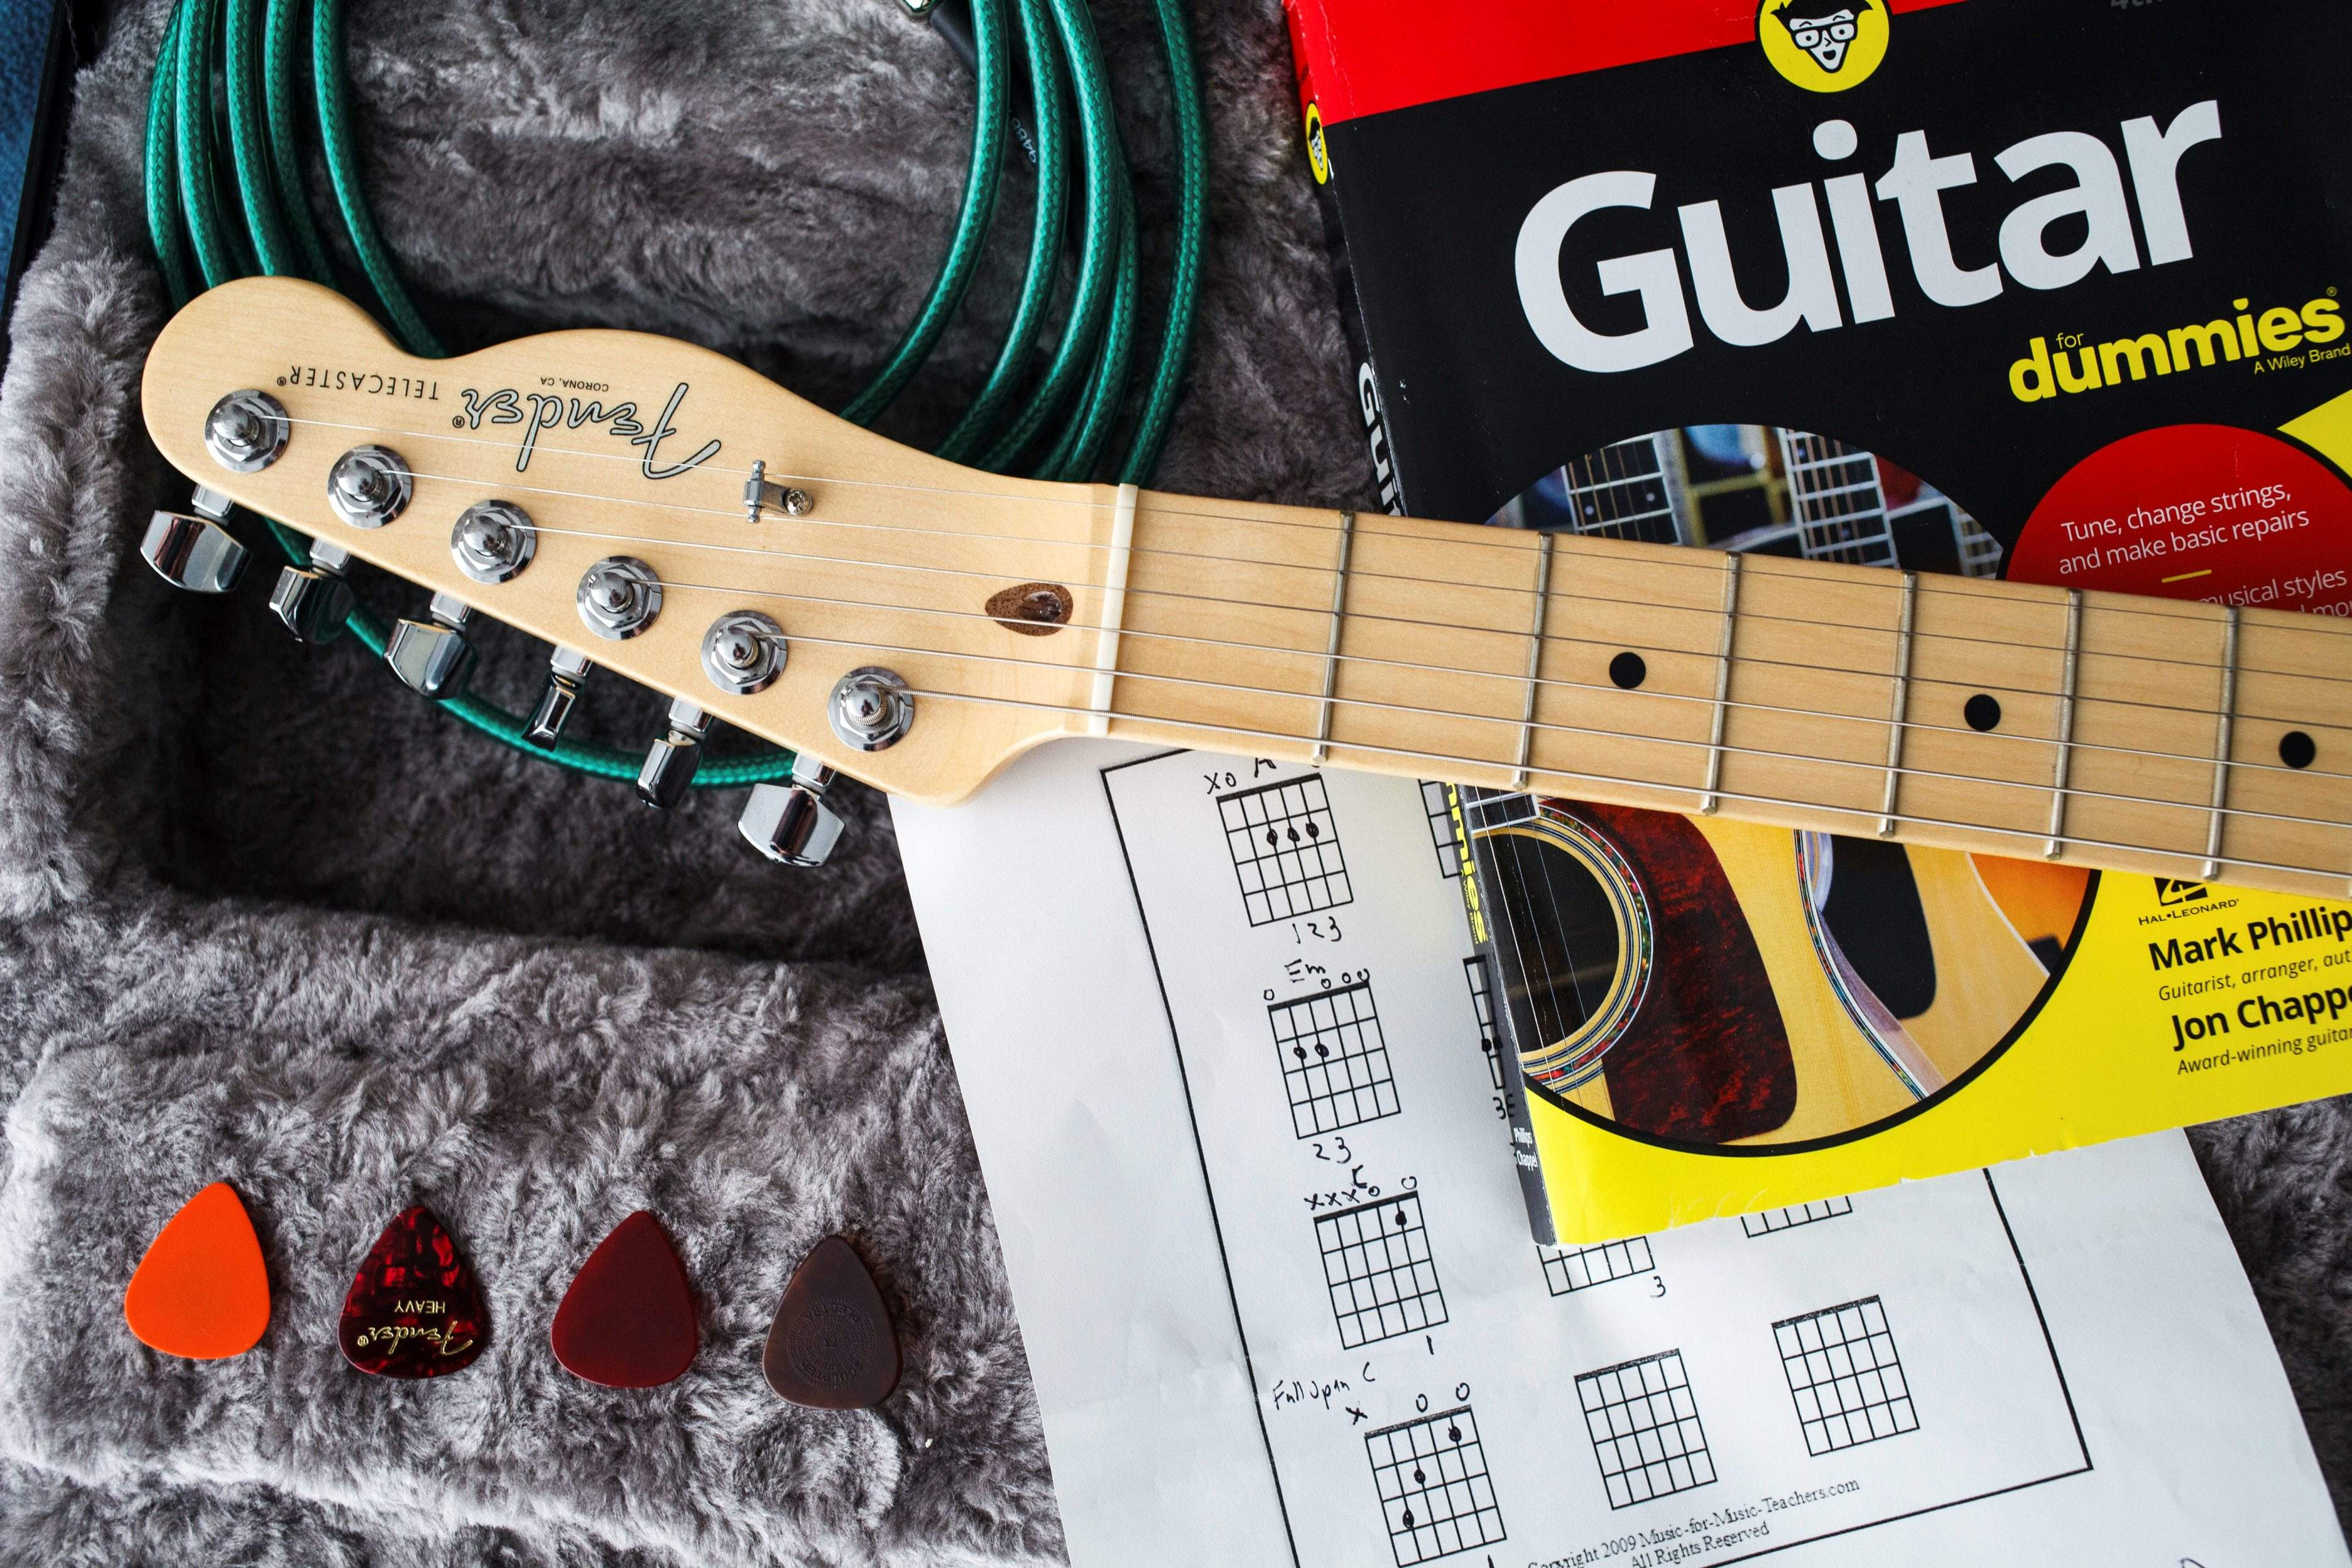 How To Learn To Play Guitar At Age 50